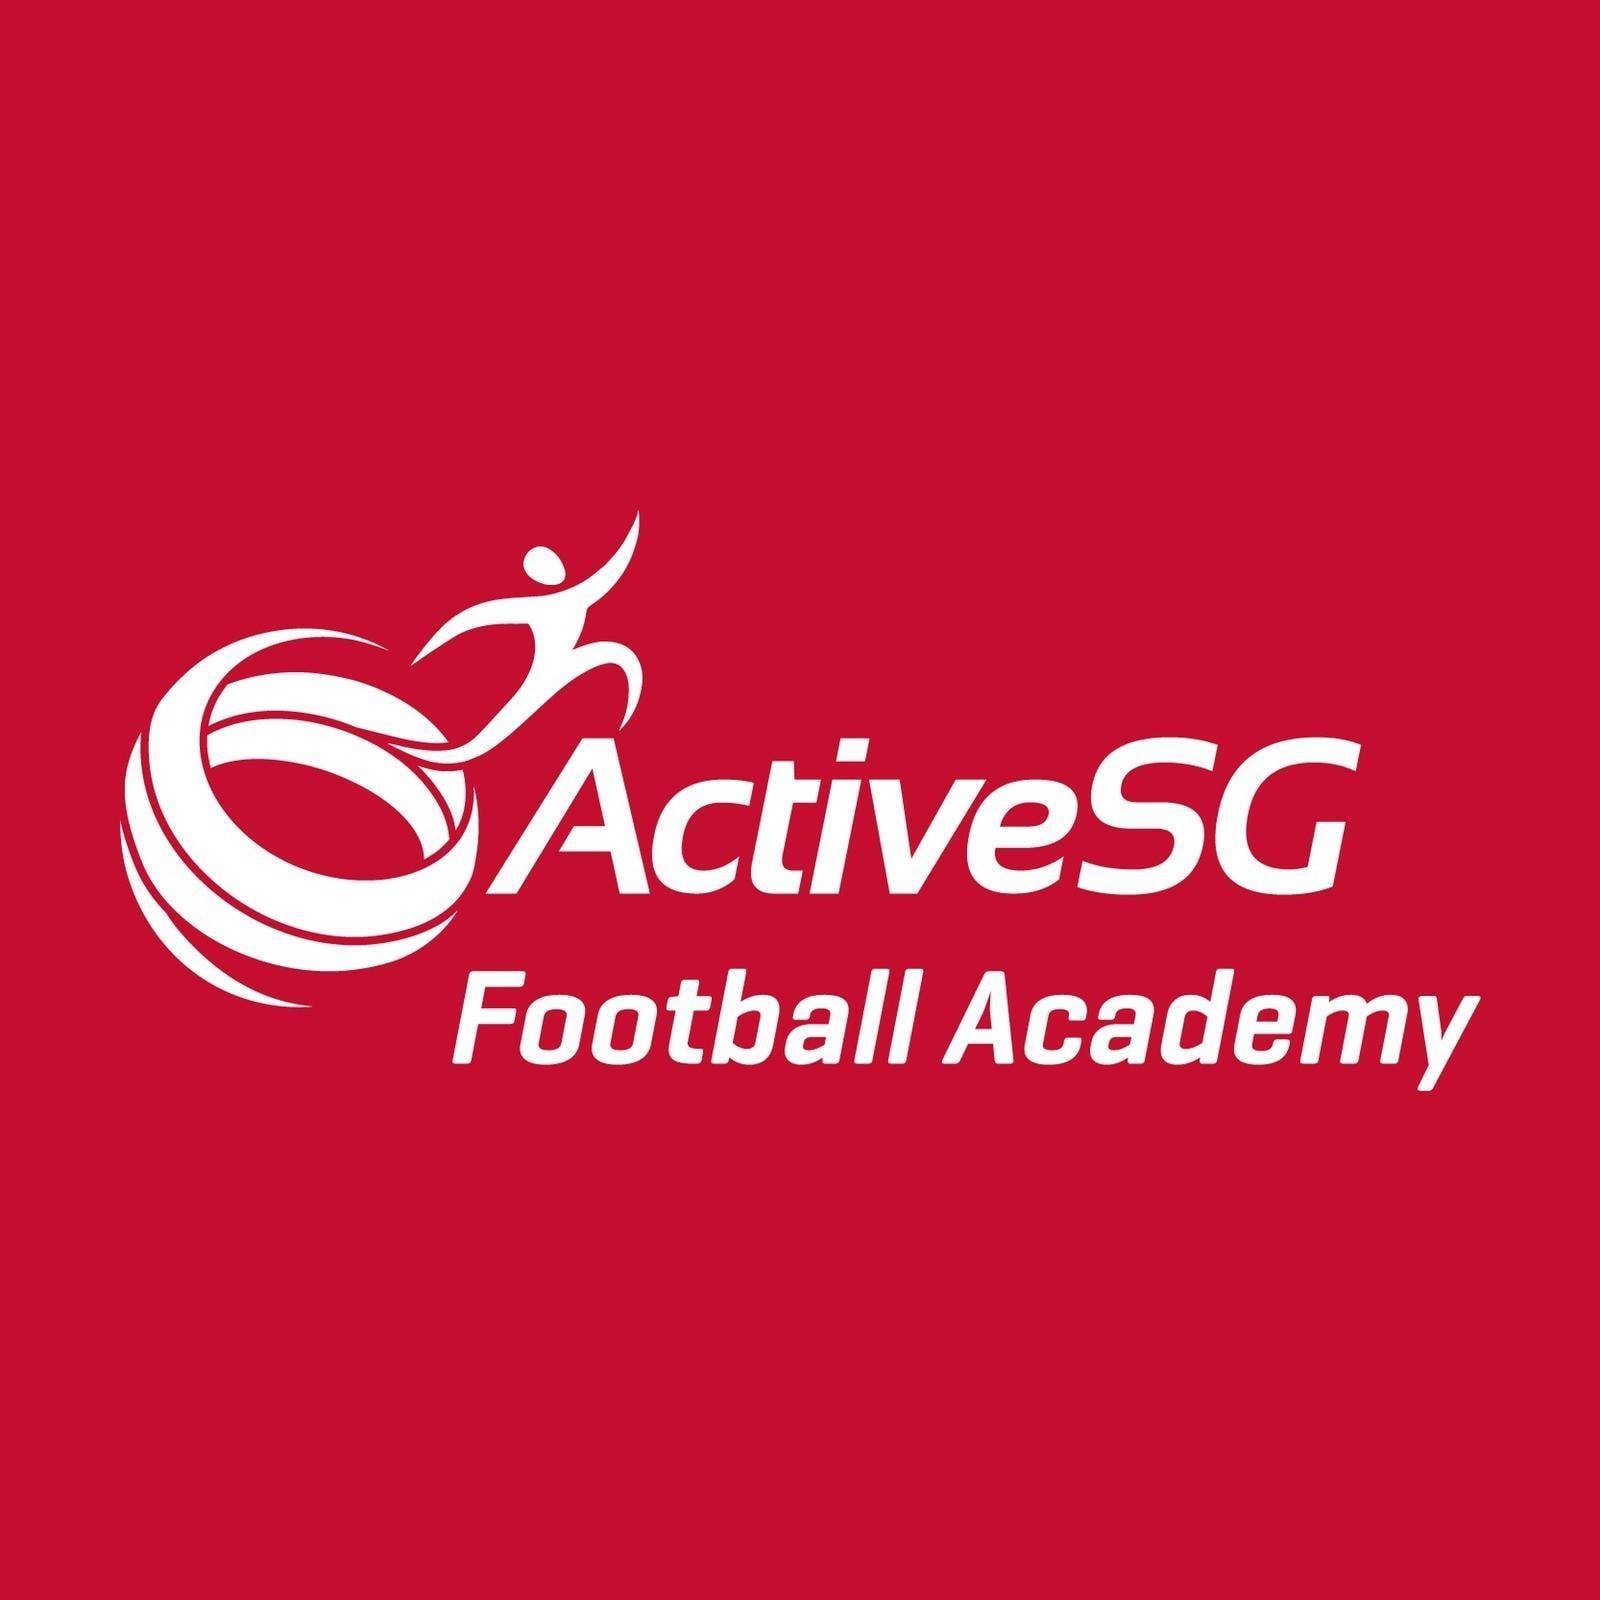 ActiveSG Football Academy